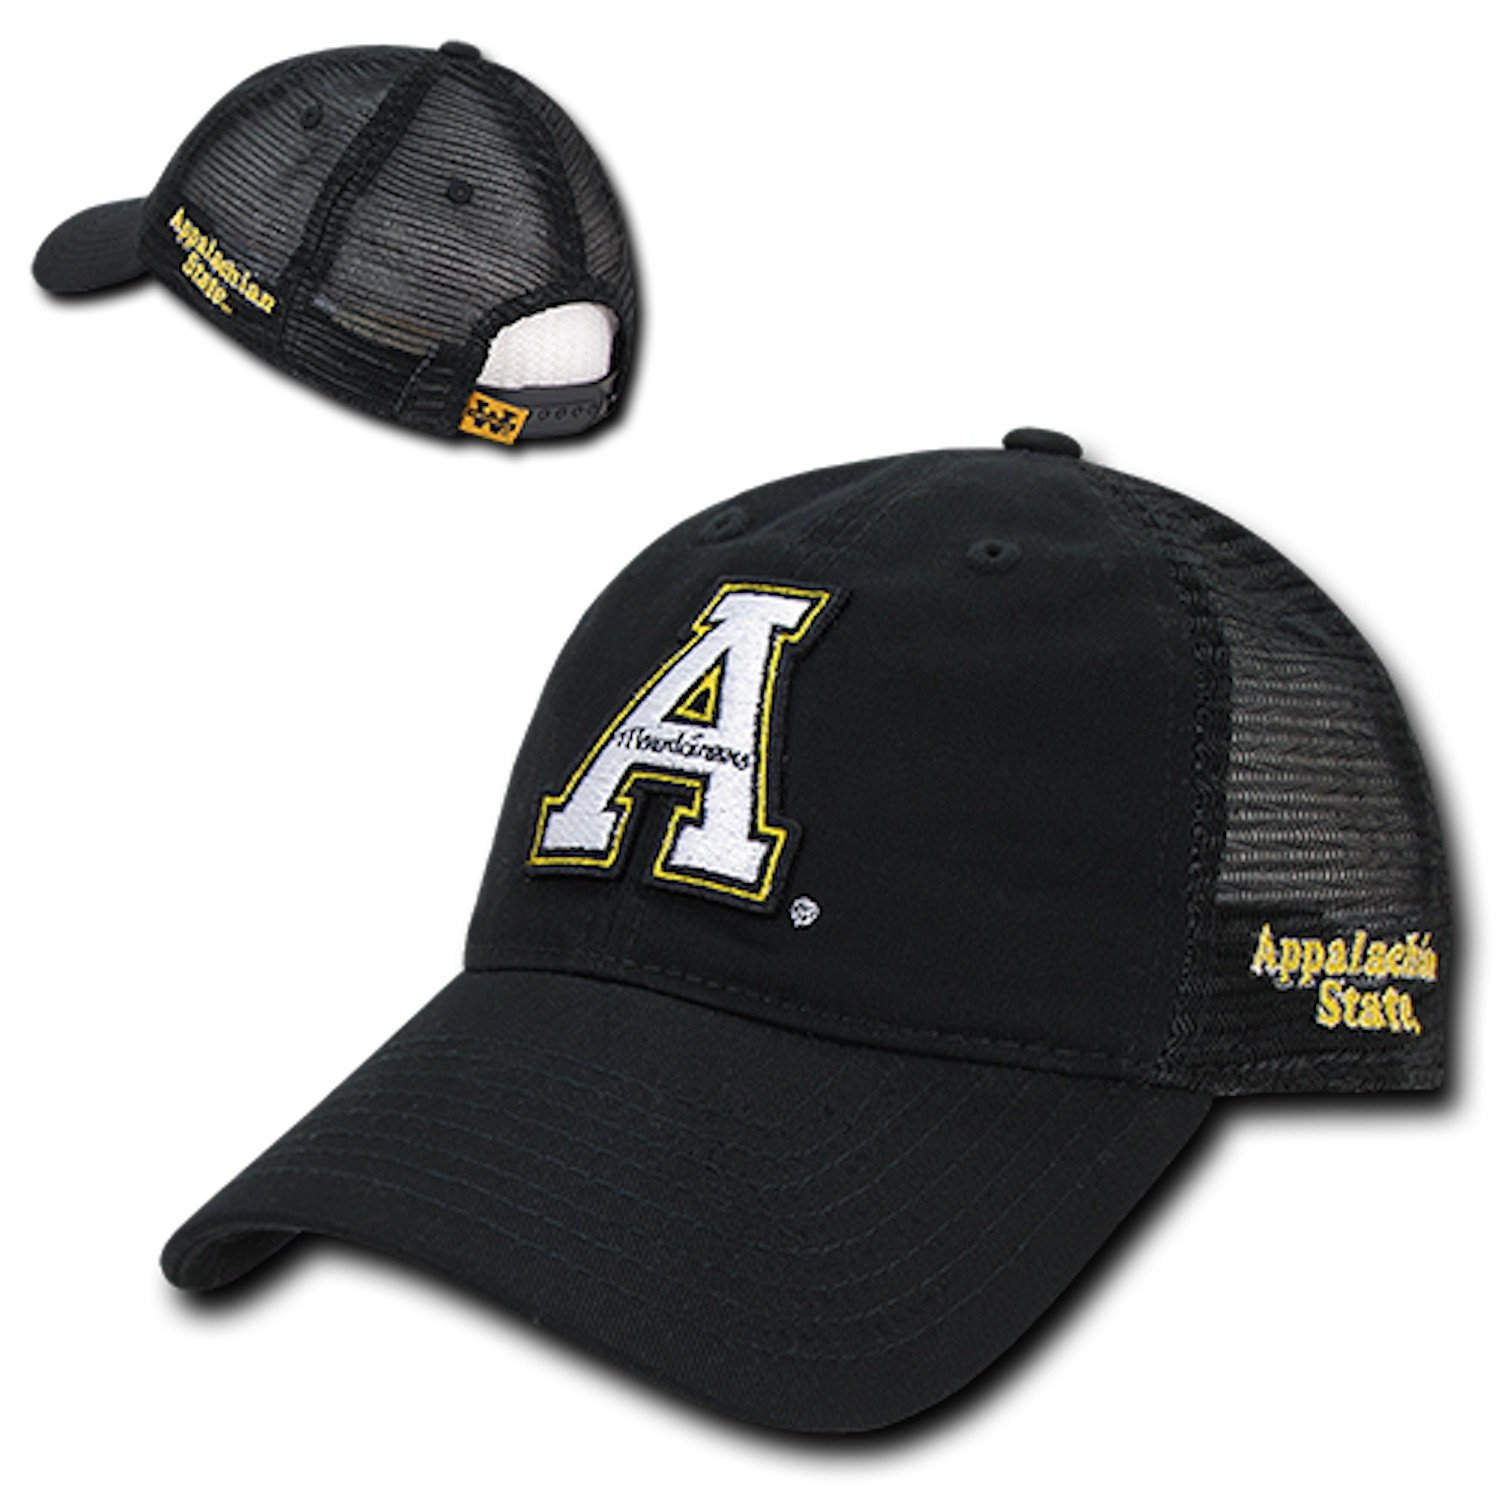 a60cf1146cd Amazon.com  ASU Appalachian App State University Mountaineers Polo Relaxed Trucker  Mesh Baseball Ball Cap Hat  Clothing